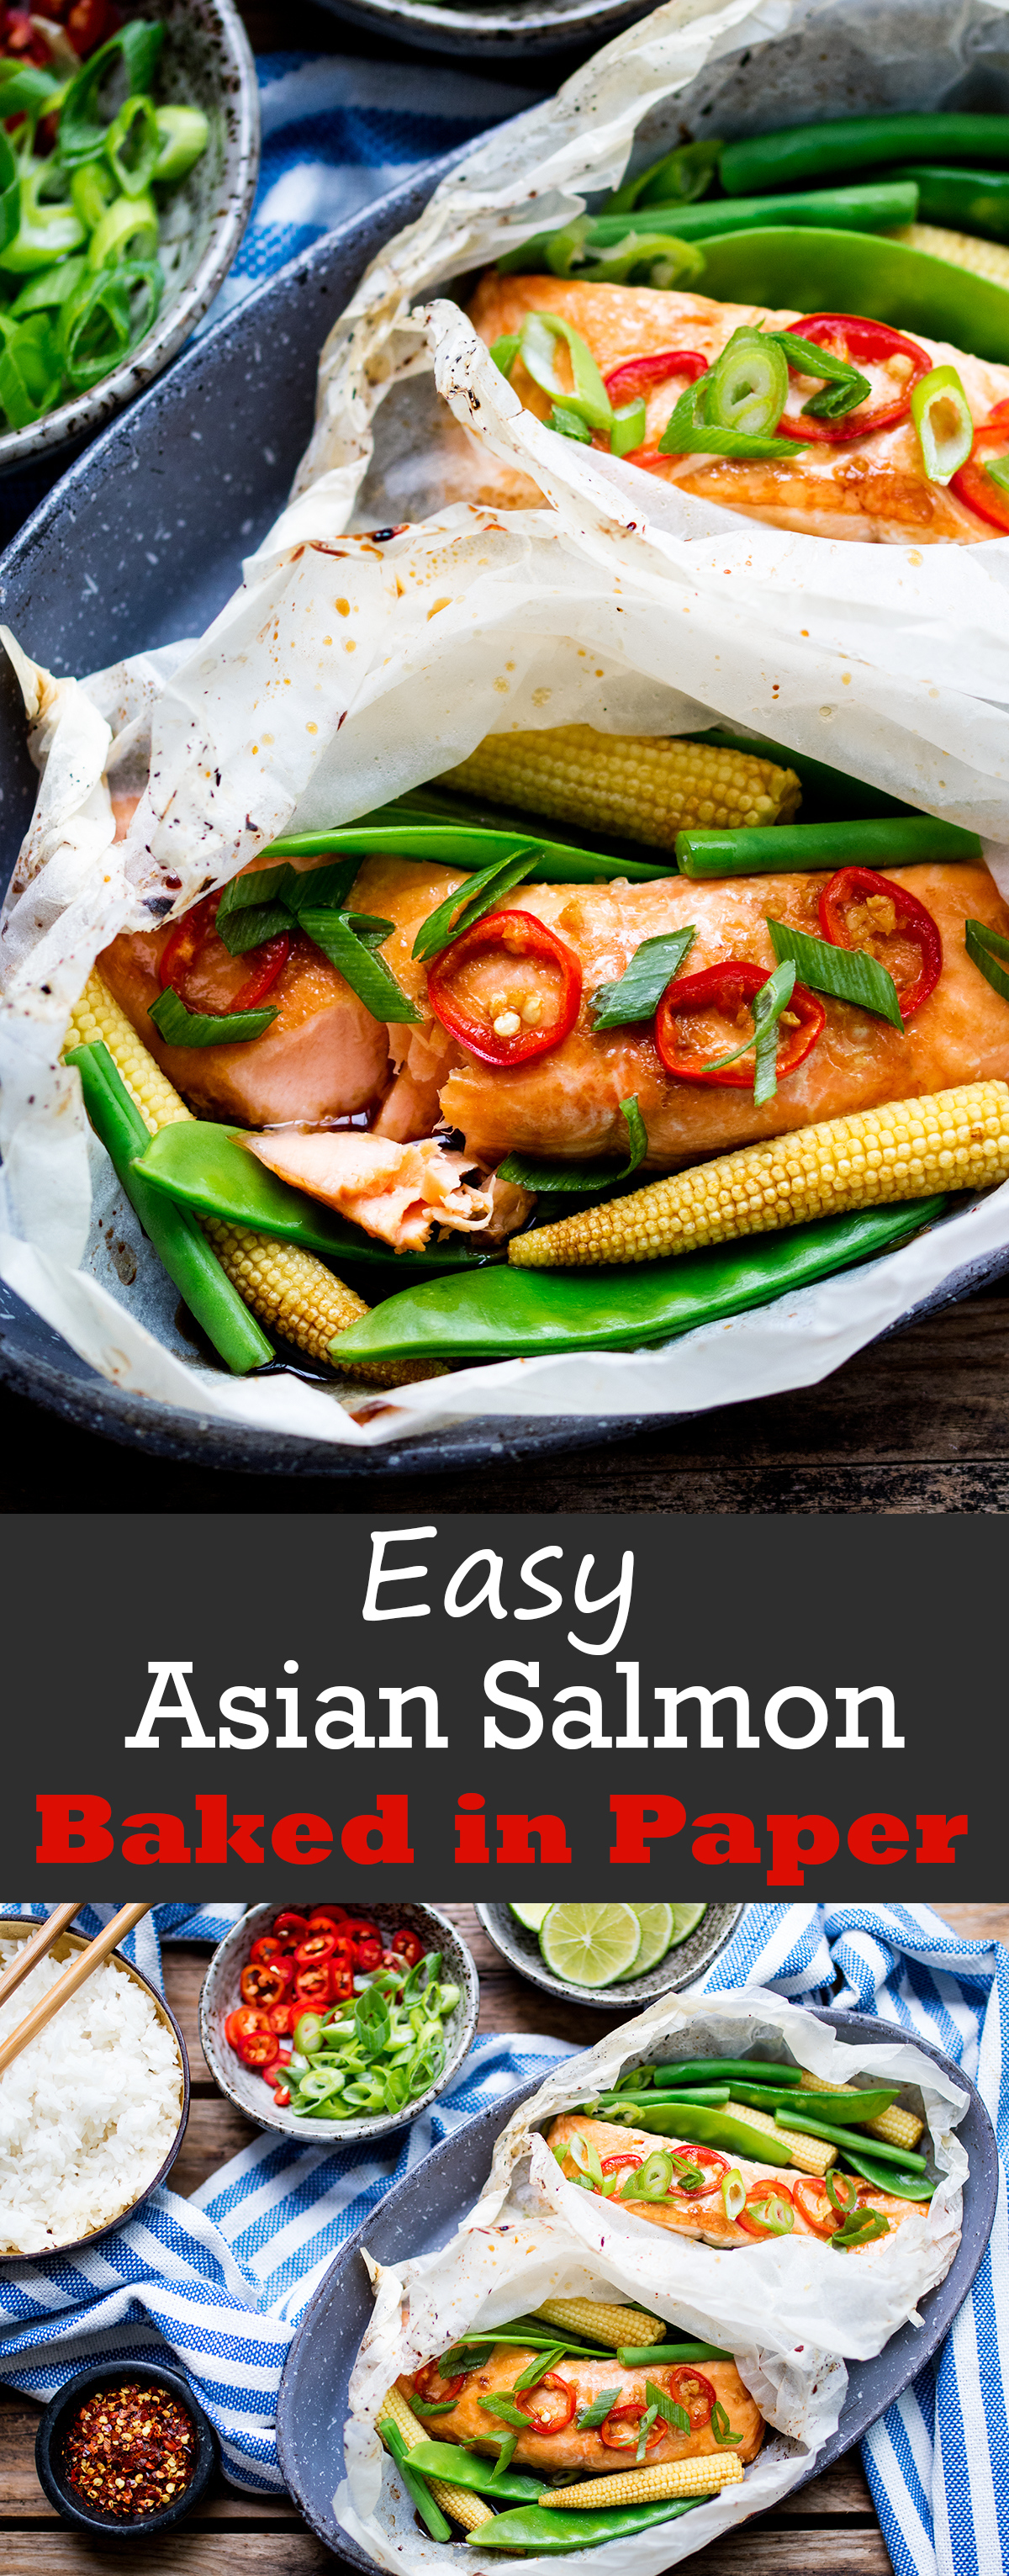 Easy Asian baked salmon - cooked in paper so it's moist and tender.